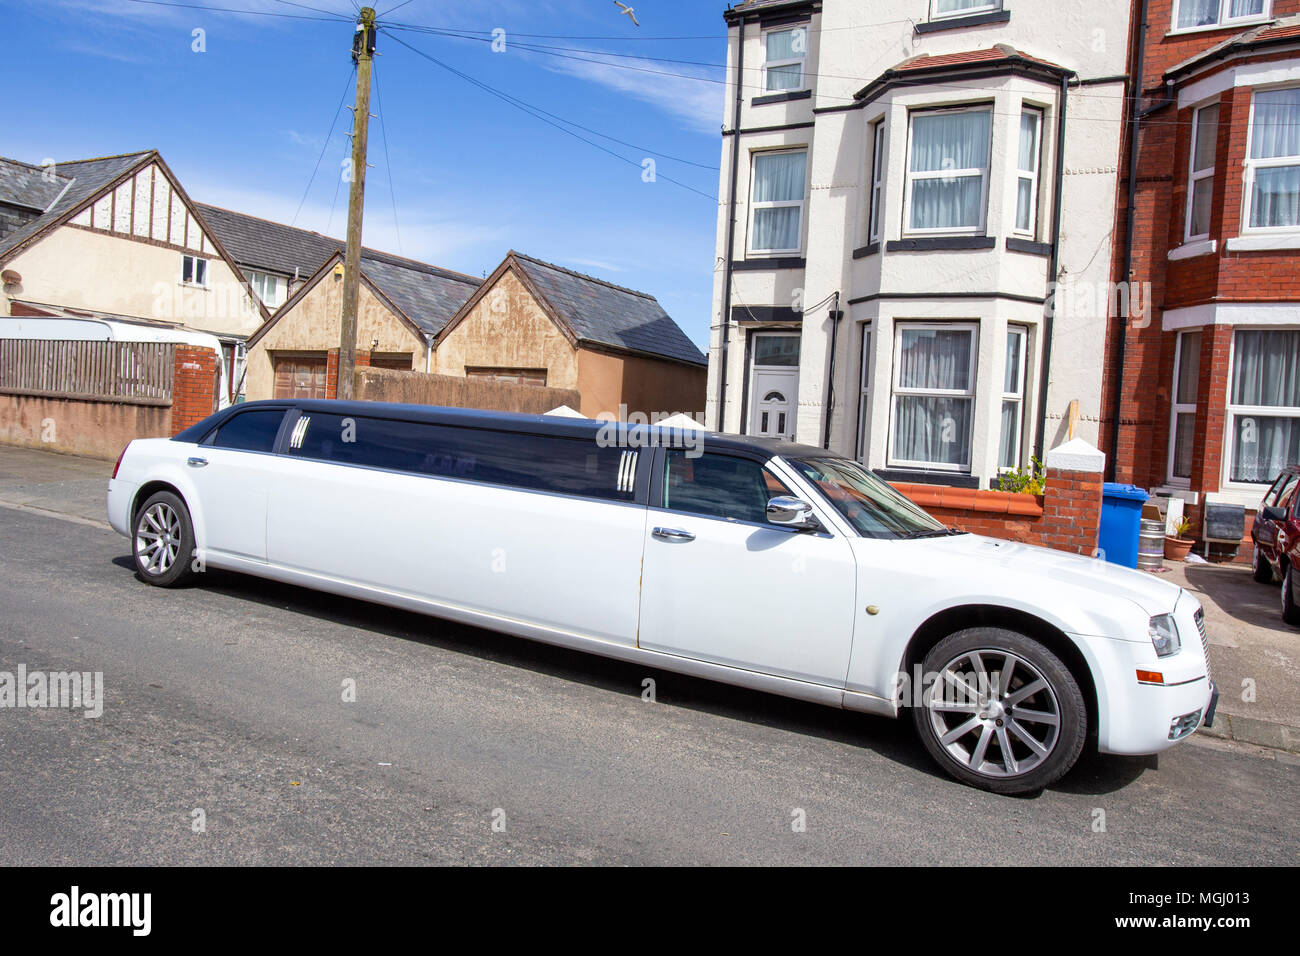 White streched limousine in Rhyl Denbighshire Wales UK - Stock Image